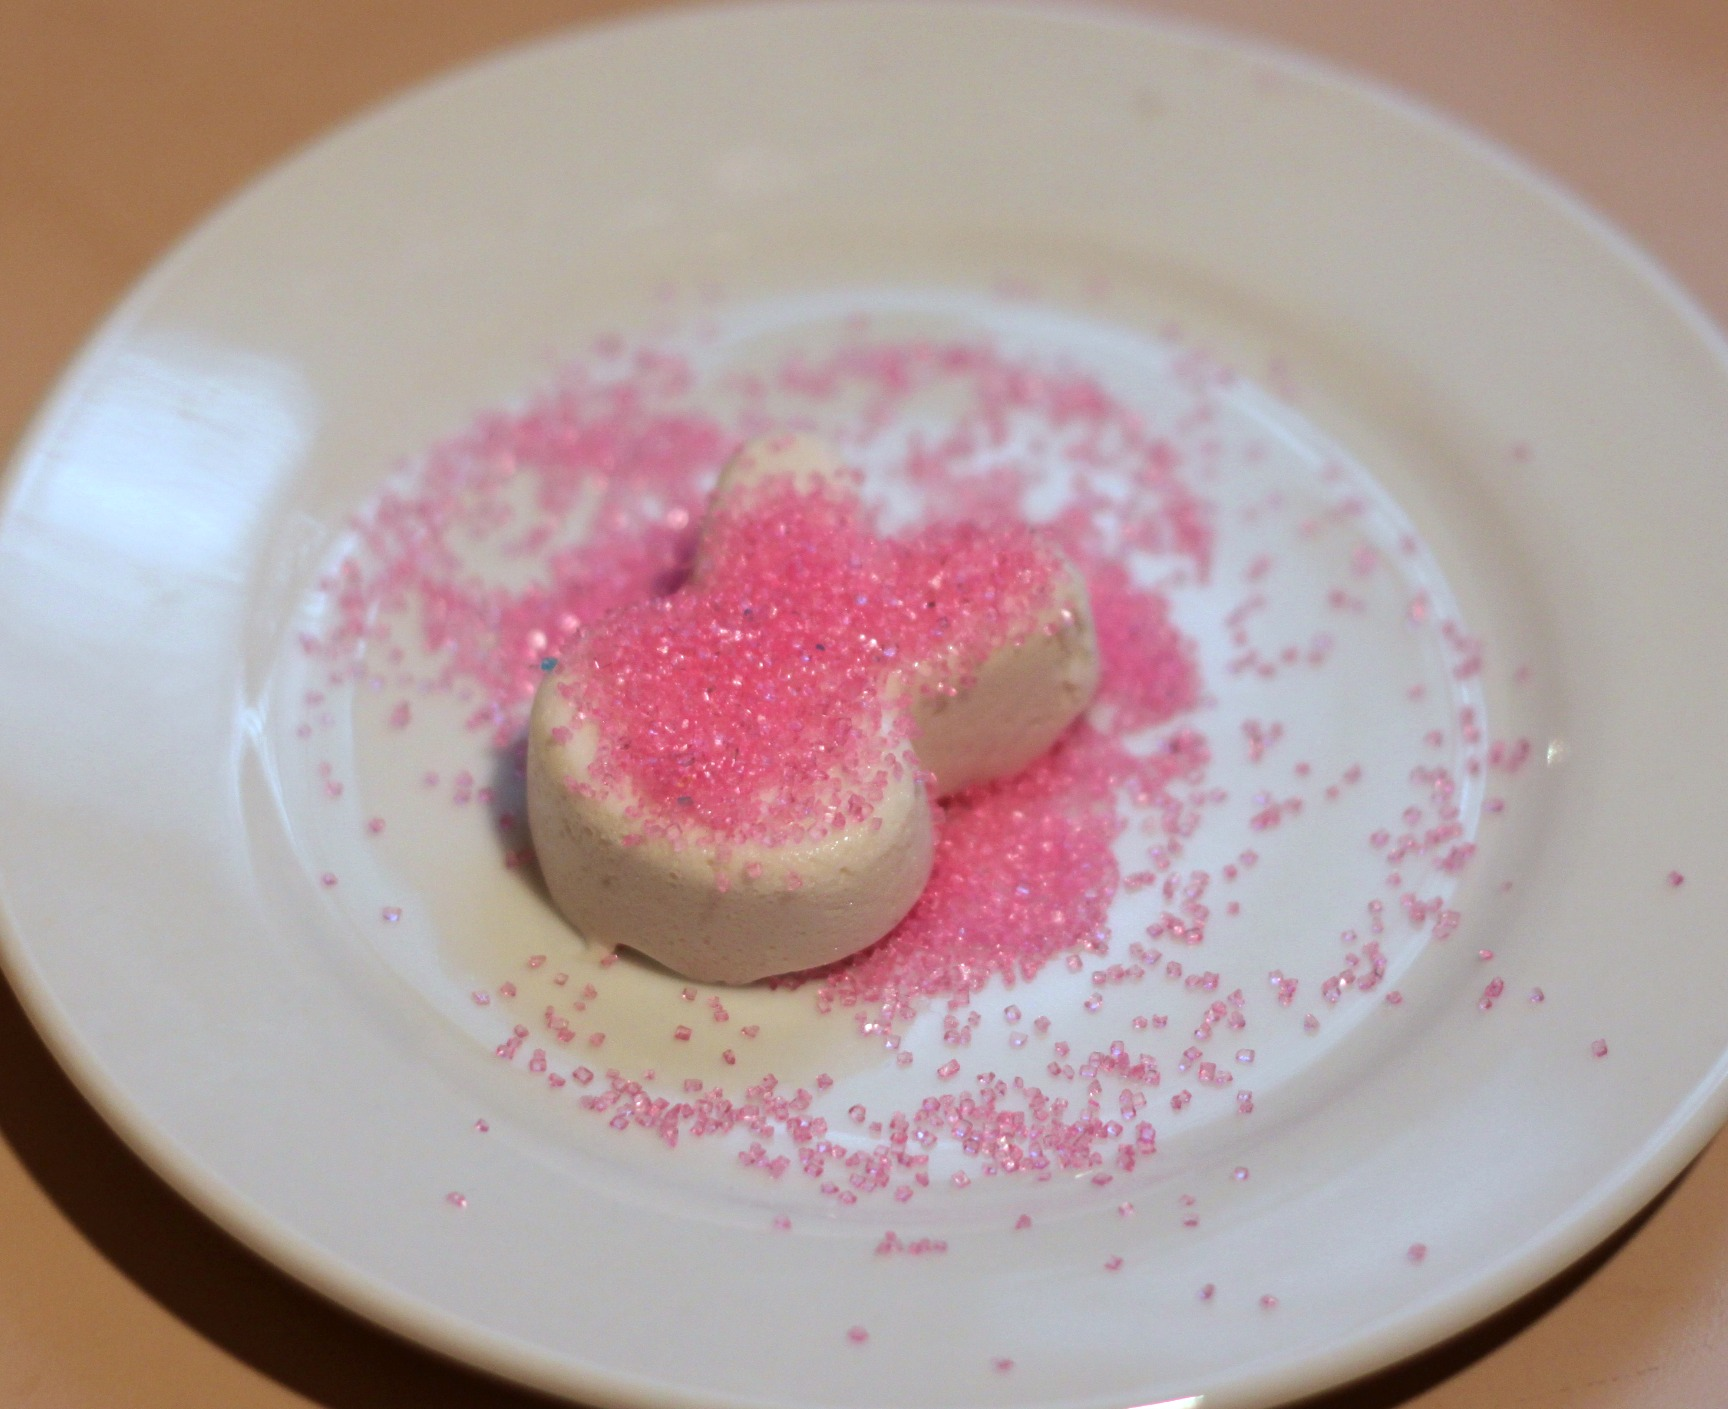 Coat homemade marshmallow in colored sugar